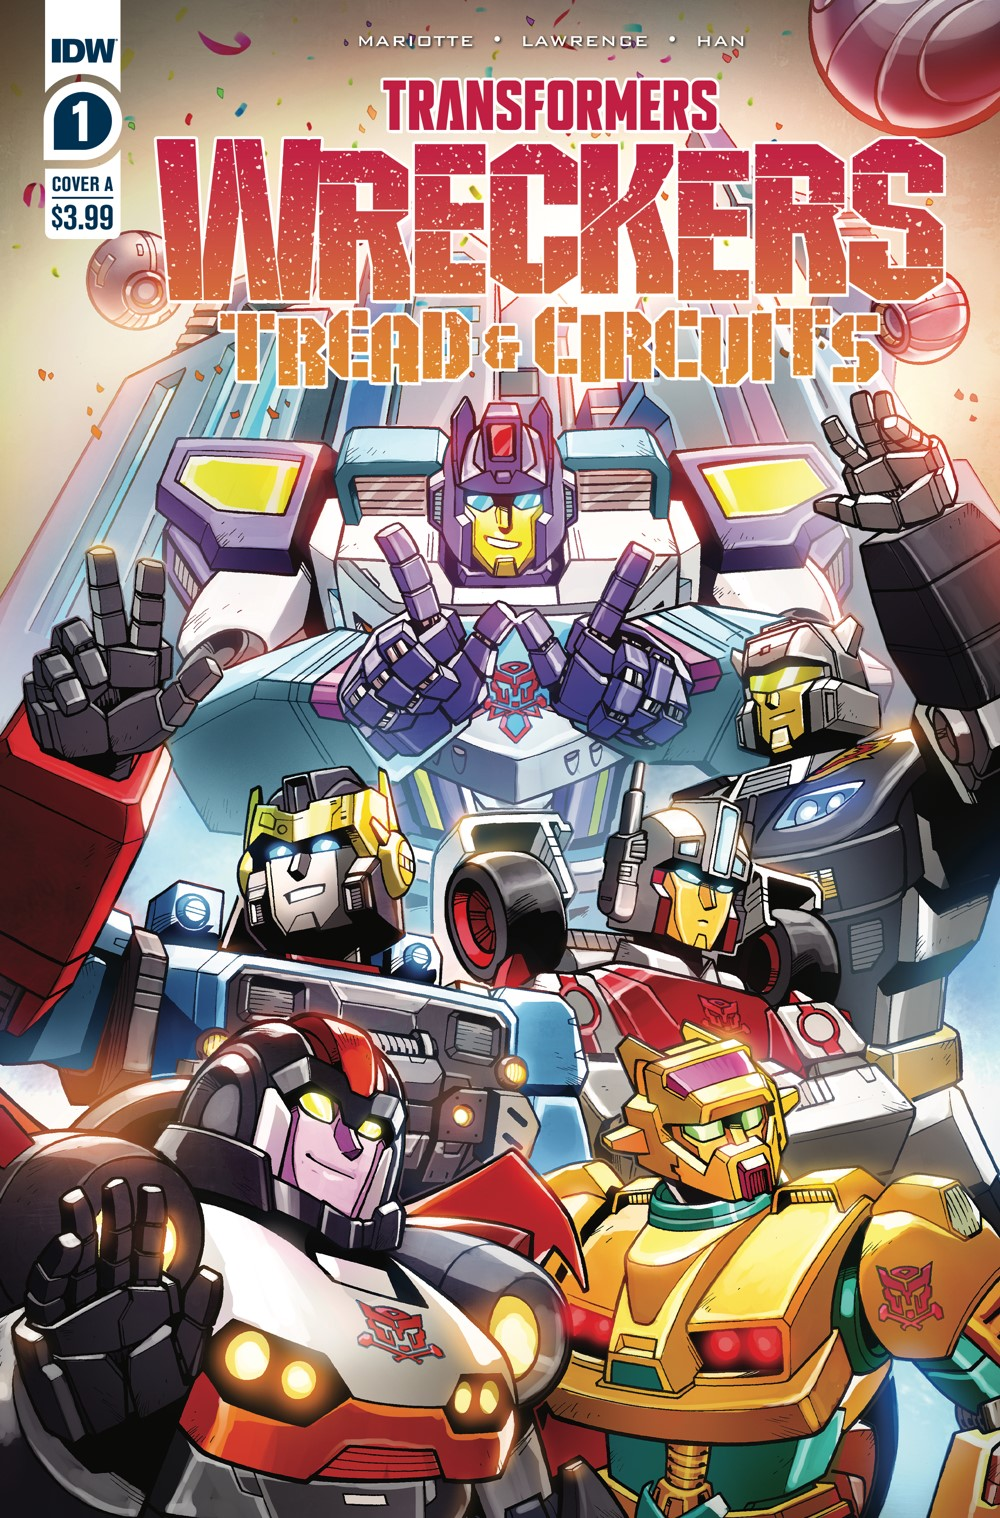 TF-Wreckers-TnC01_cvrA ComicList: IDW Publishing New Releases for 10/13/2021